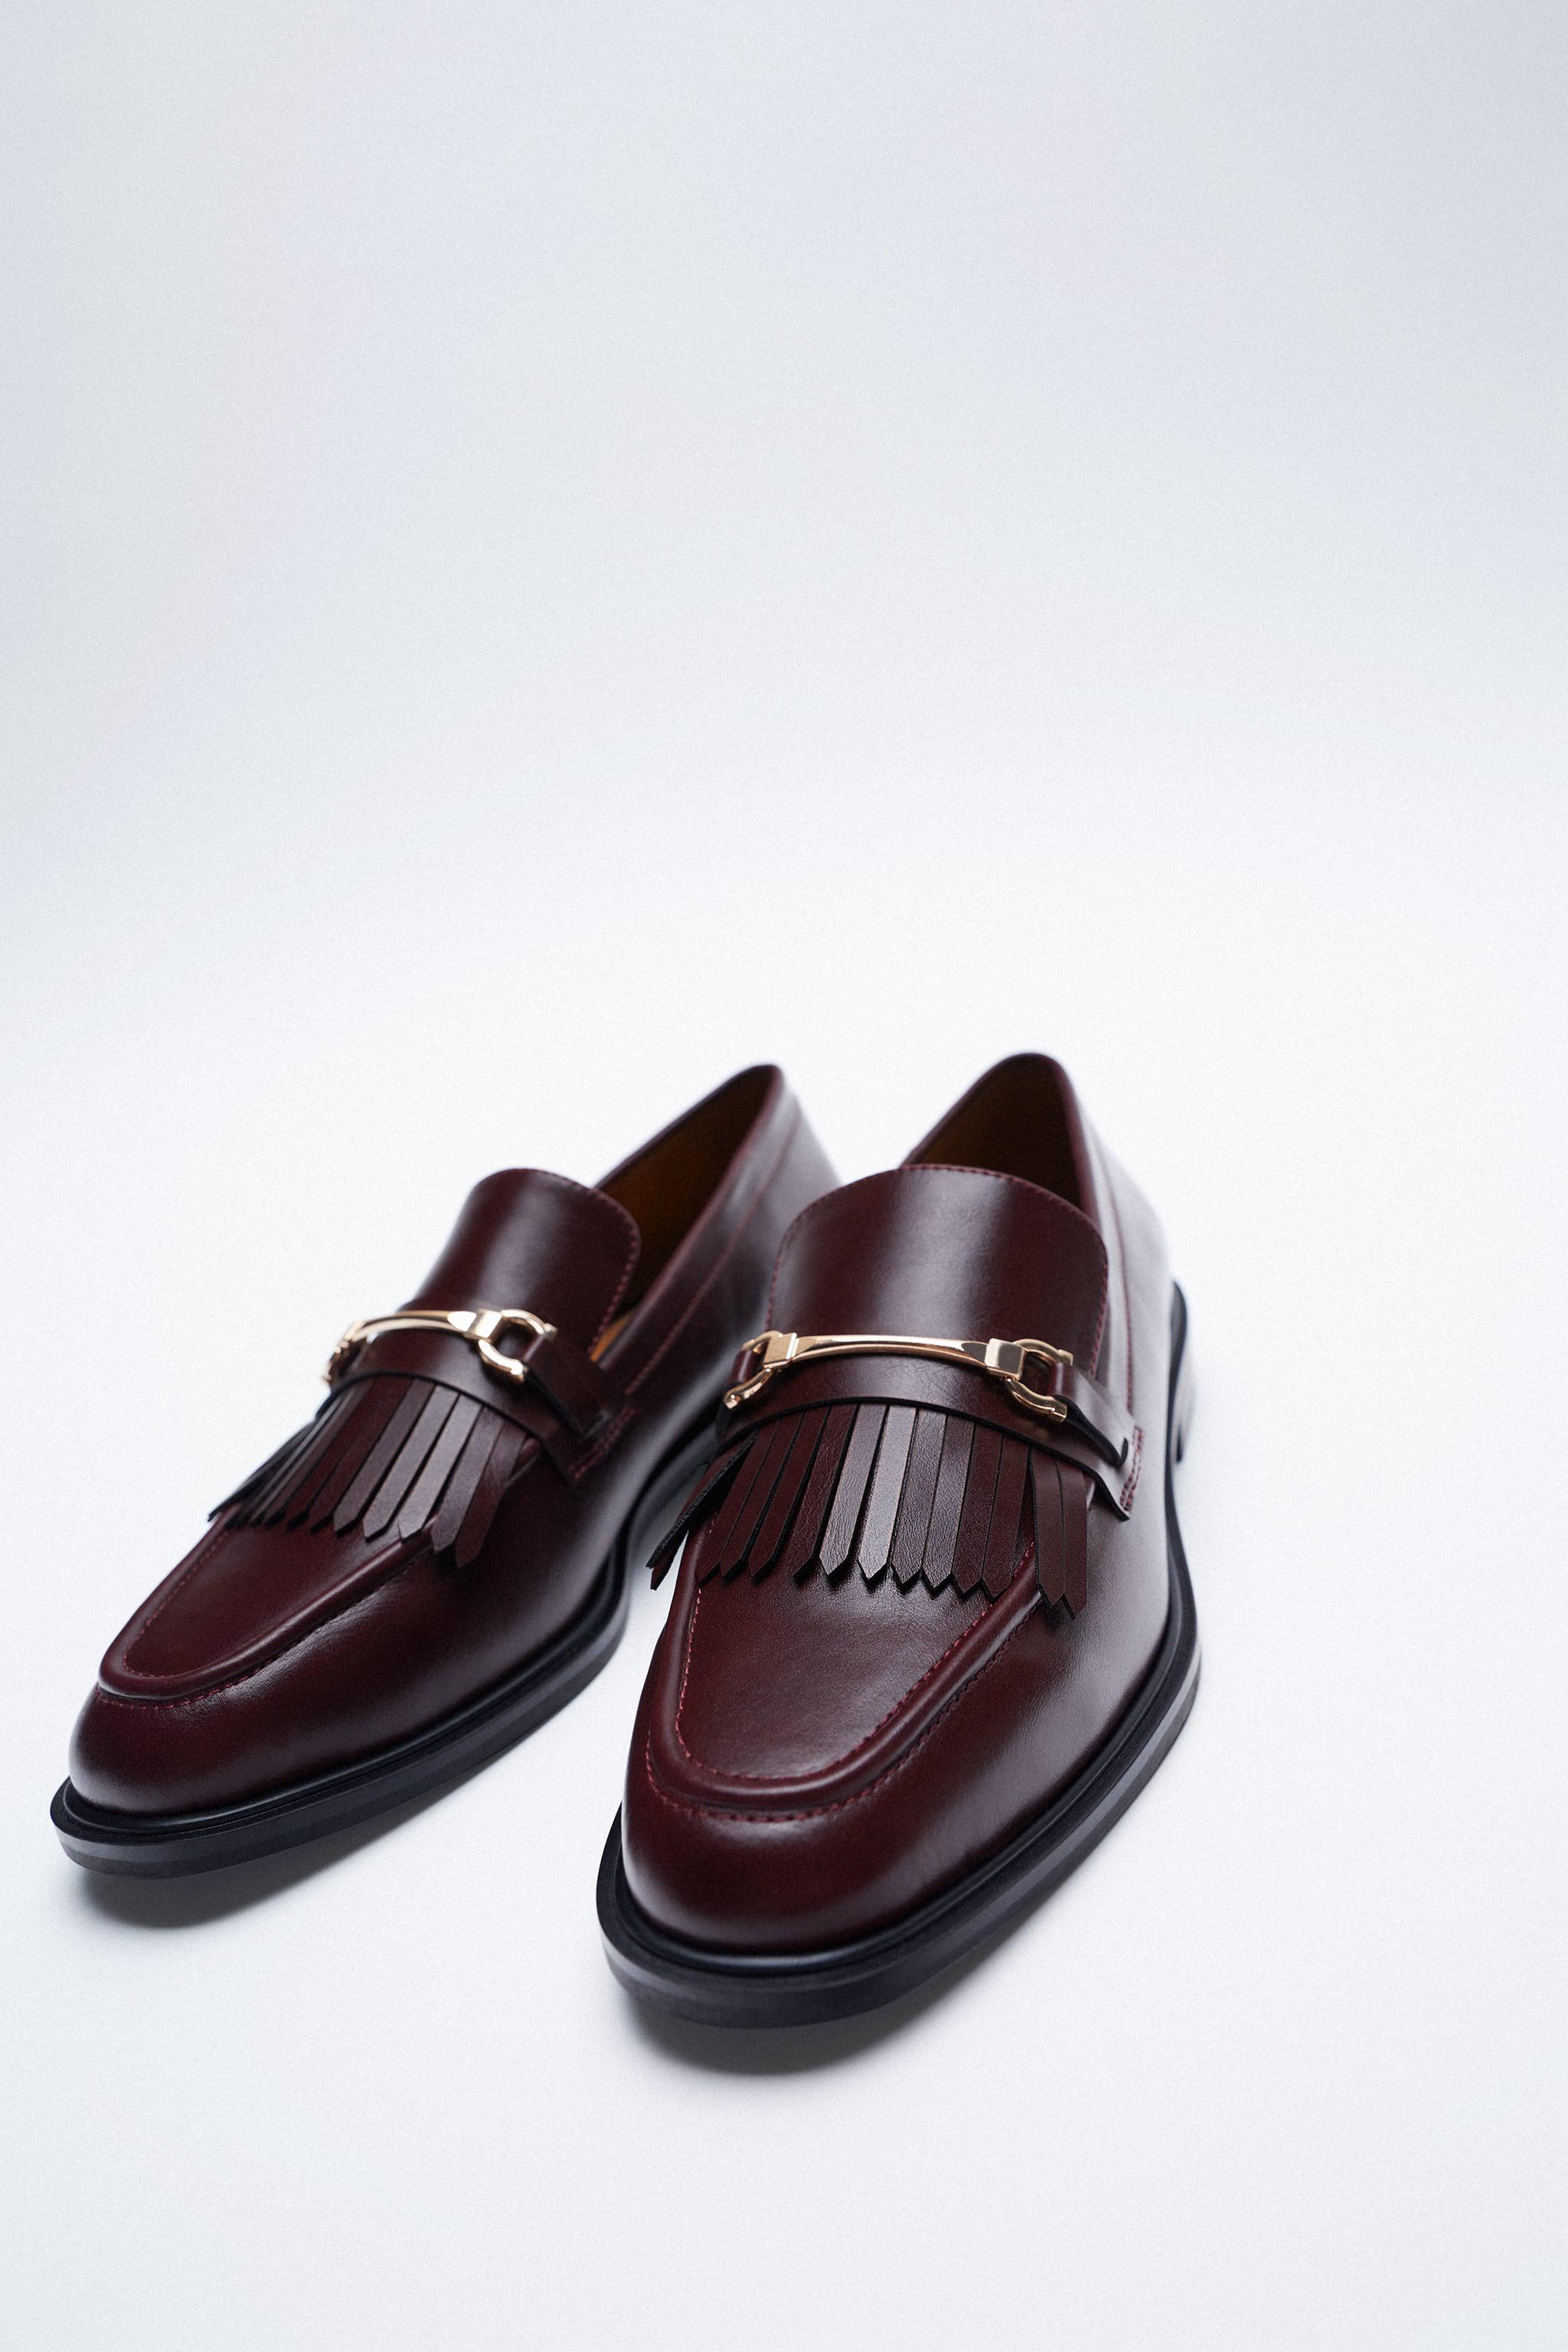 LOW HEEL FRINGED LOAFERS 1